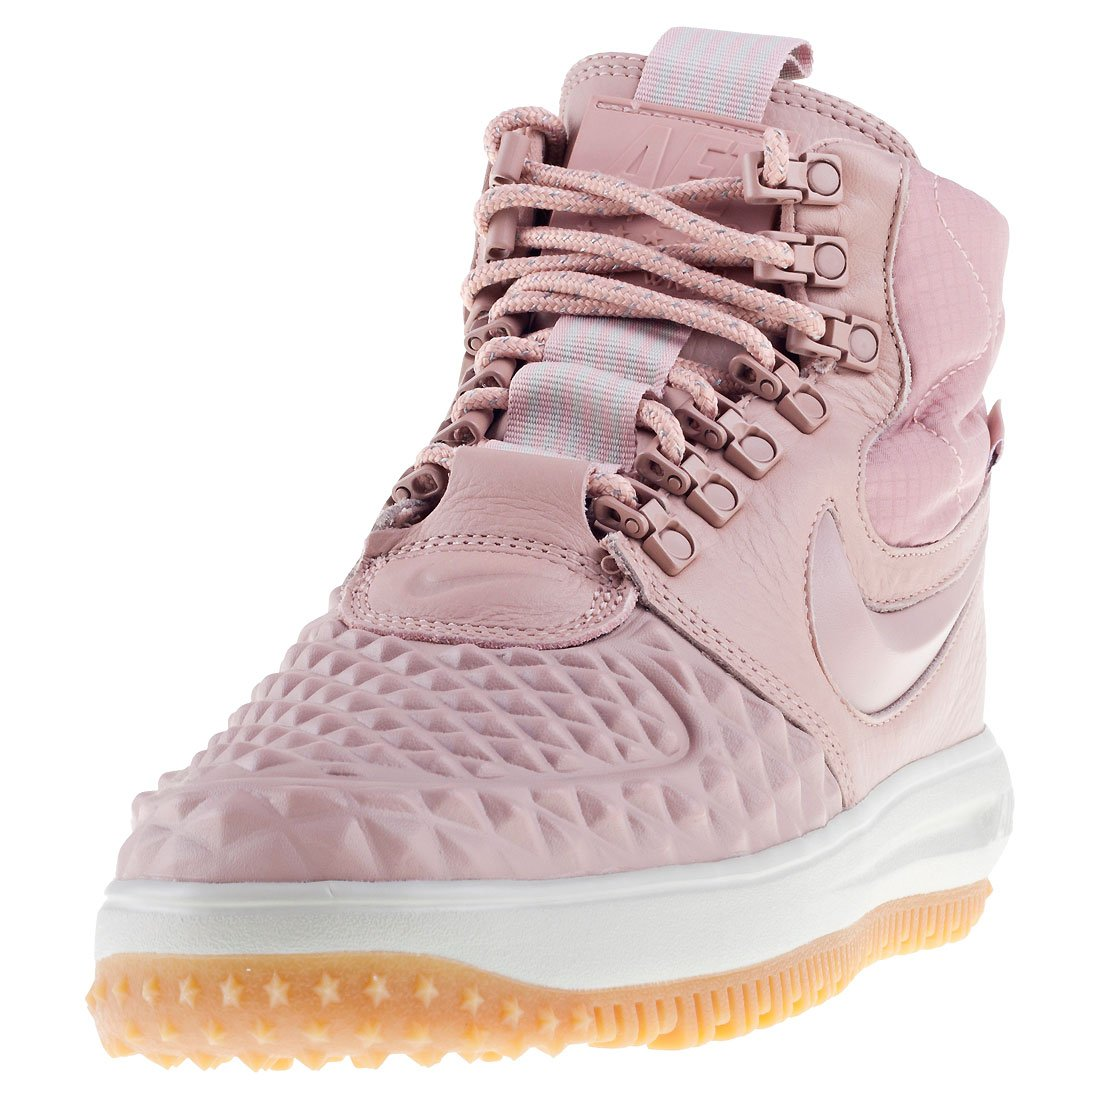 Particle Pink Nike Men's LF1 Duckboot '17 Casual shoes